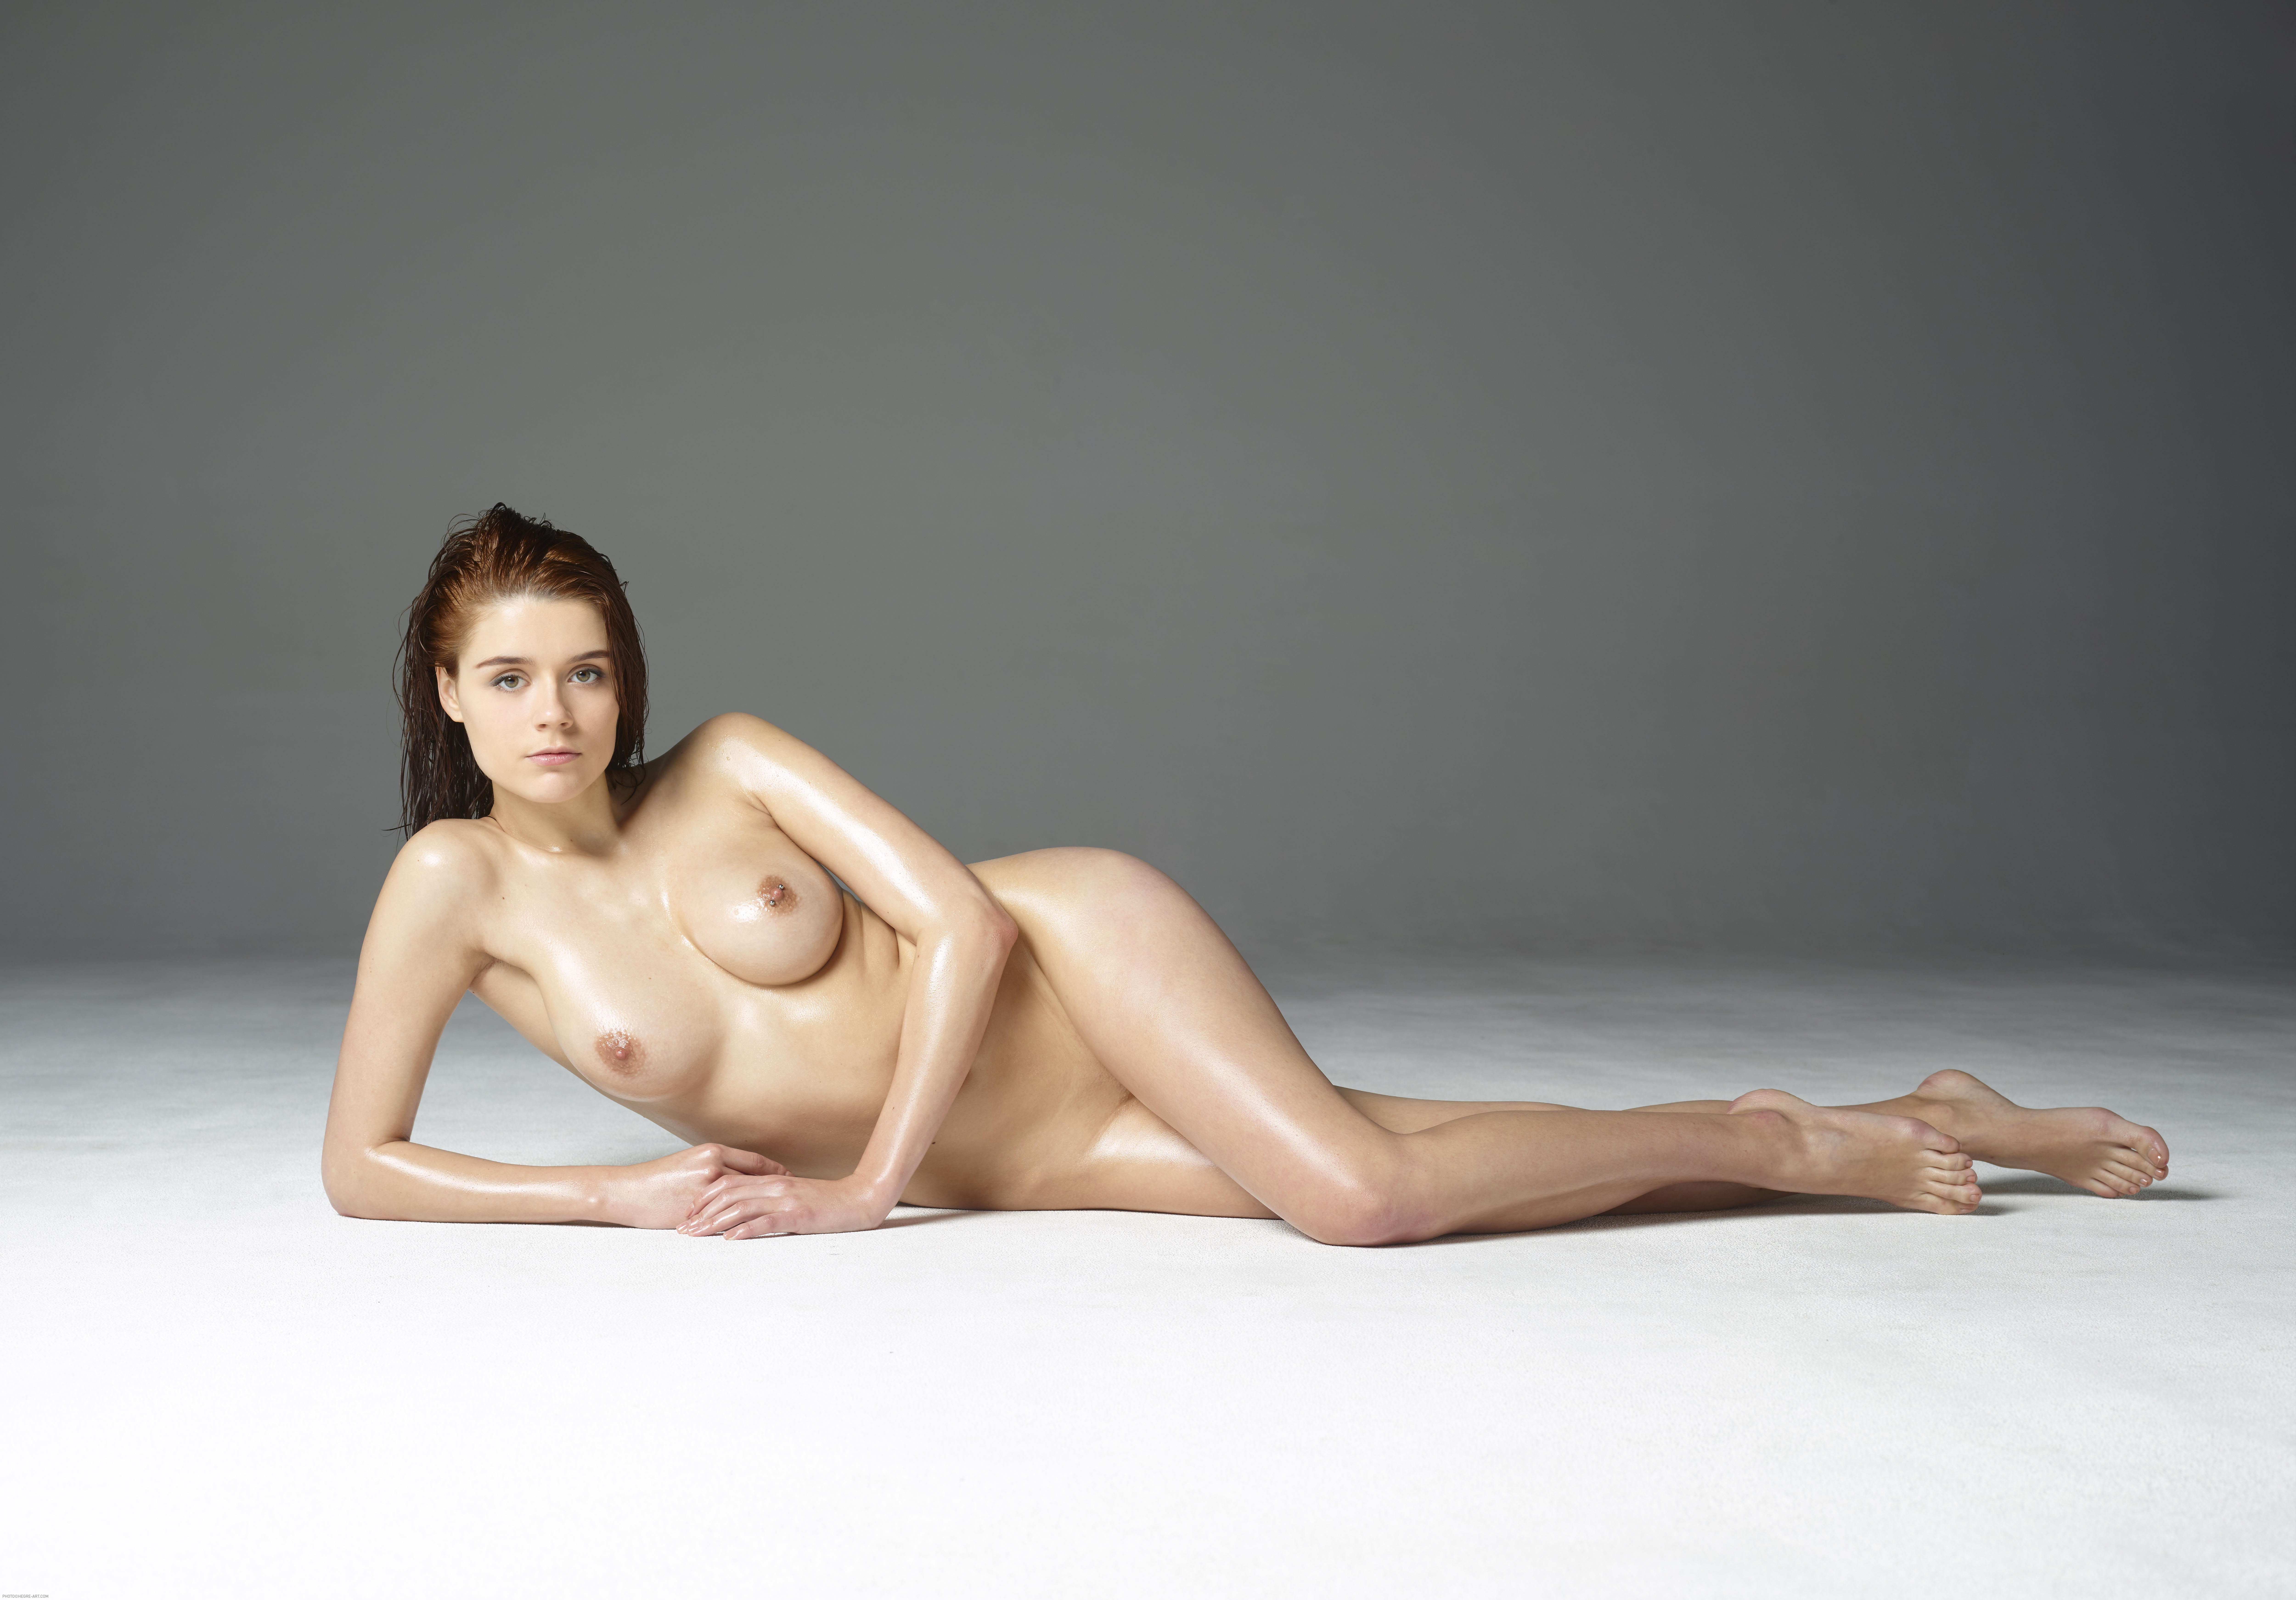 full-nude-models-sexy-girl-stretching